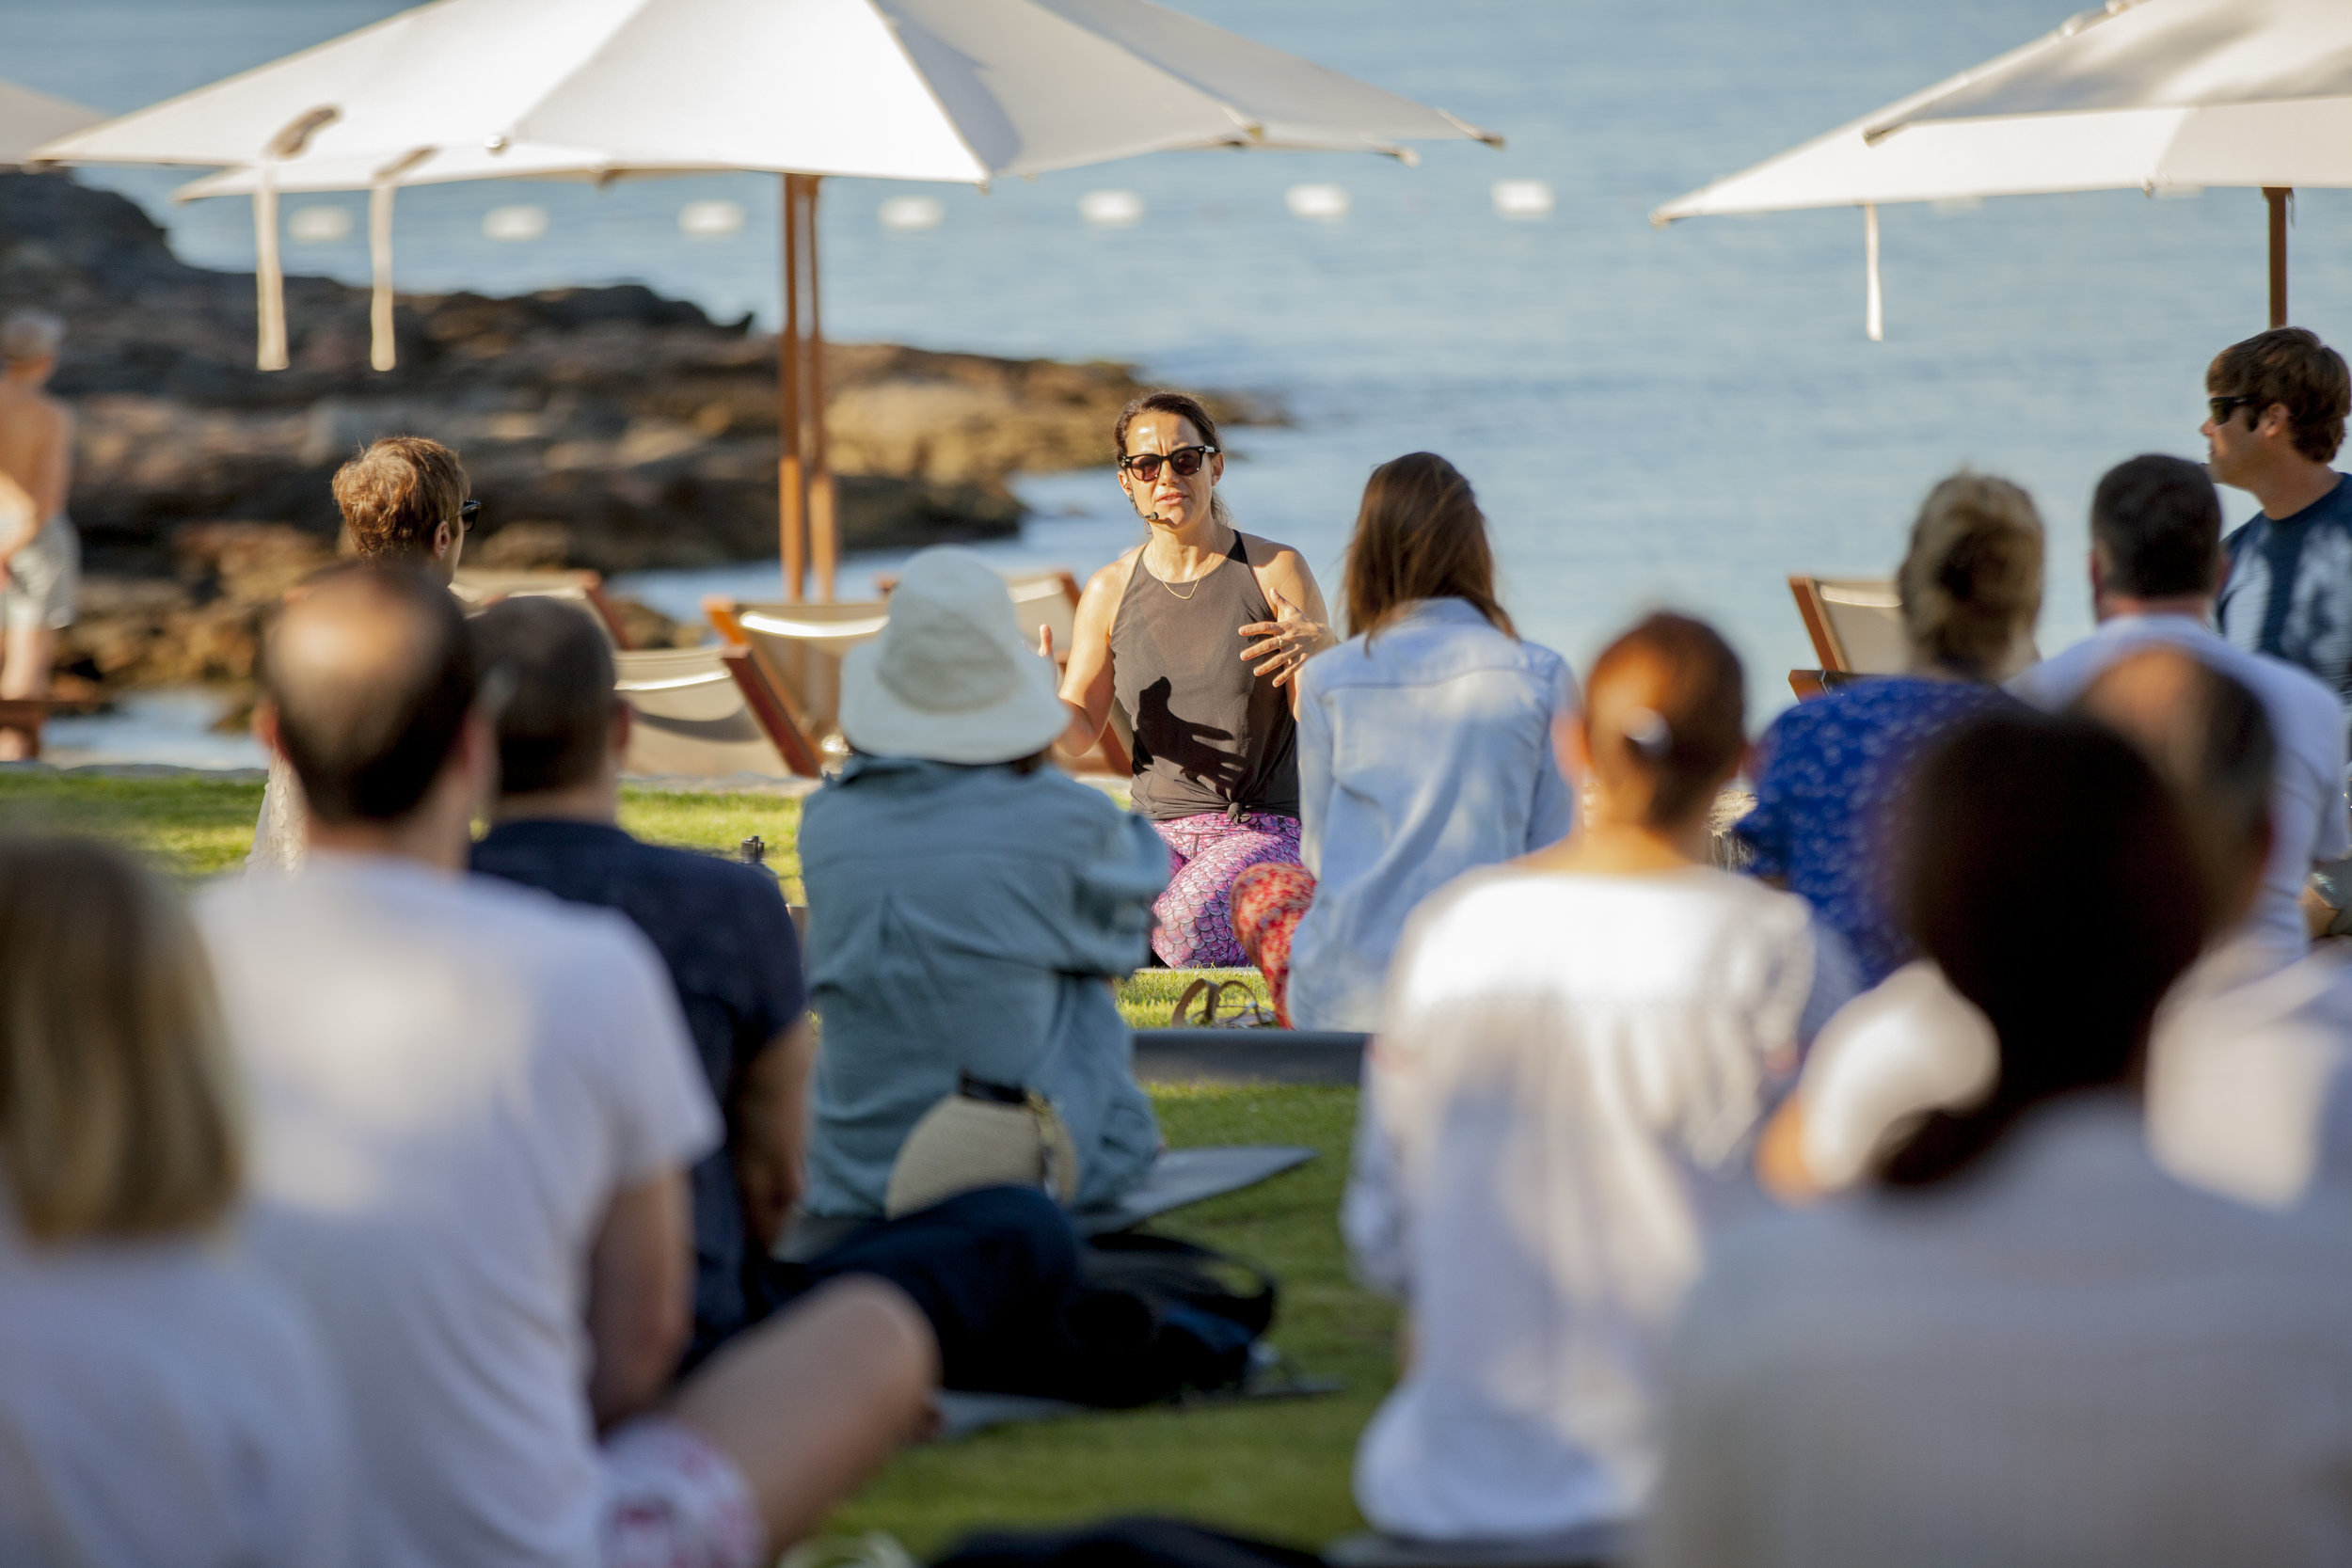 Alongside talks, Harvest Nature featured workshops that covered everything from Voga to make-your-own body scrub, sun-gazing with a special telescope and freediving breathwork lessons lead by filmmaker and world record holding freediver, Hanli Prinsloo.